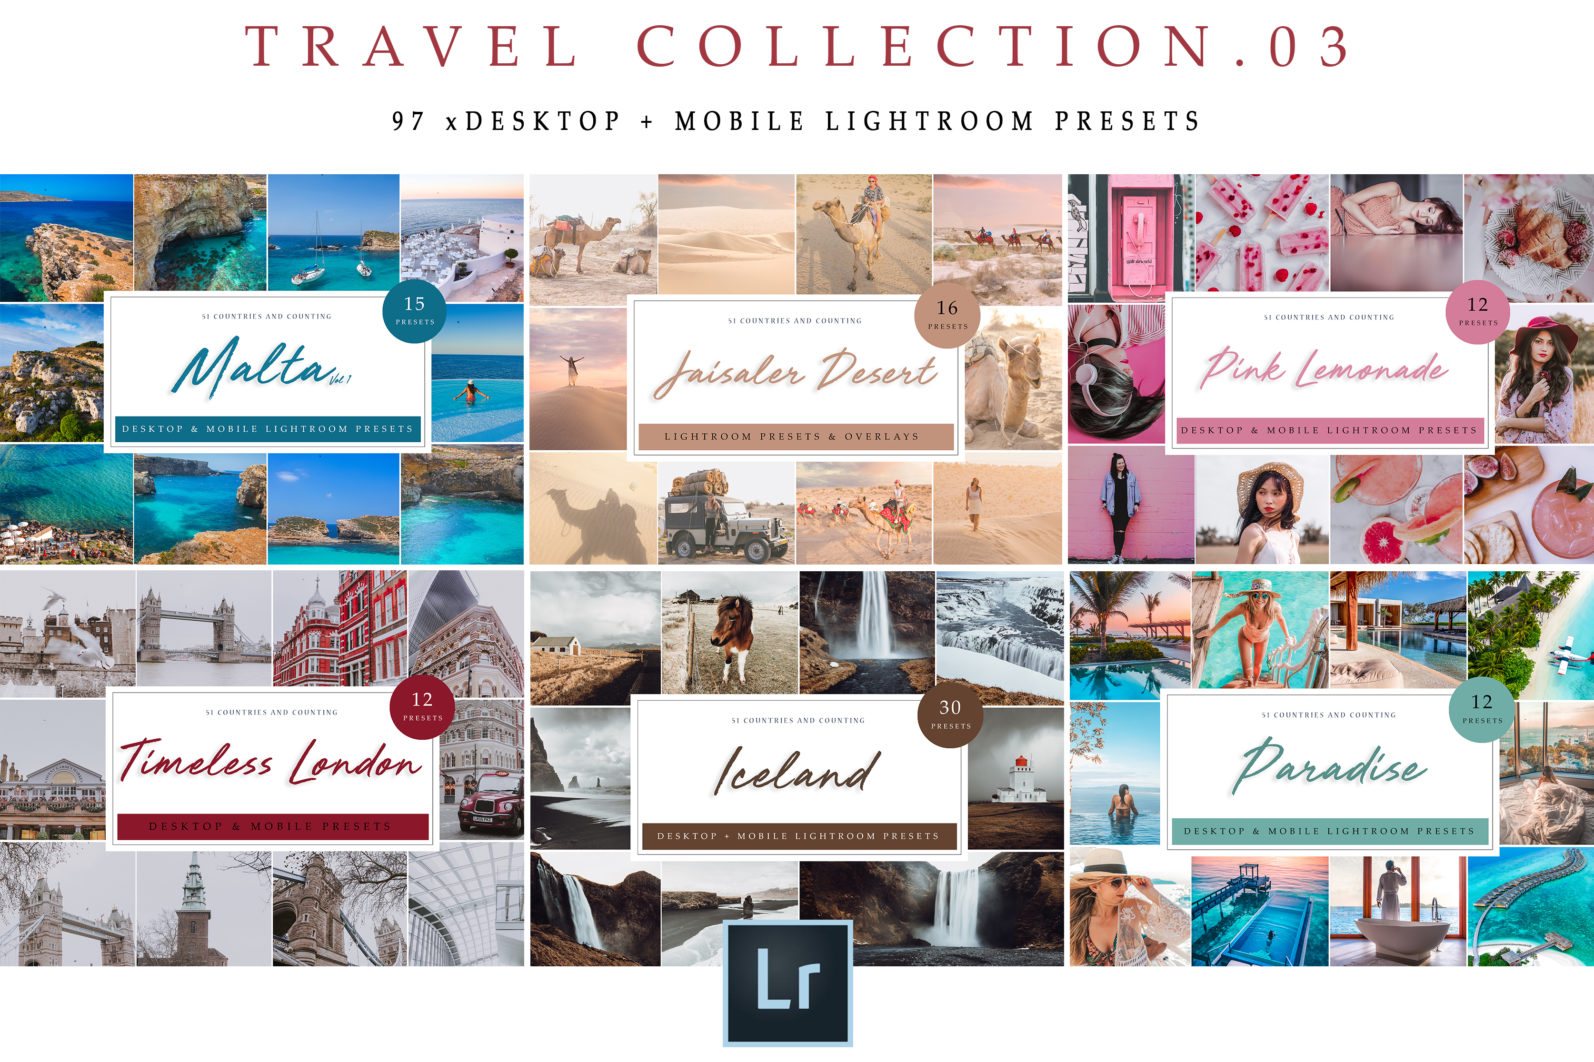 BUNDLE /// 03_Travel Collection // 97 x Desktop and Mobile Presets - Travel Collection 03 2 scaled -